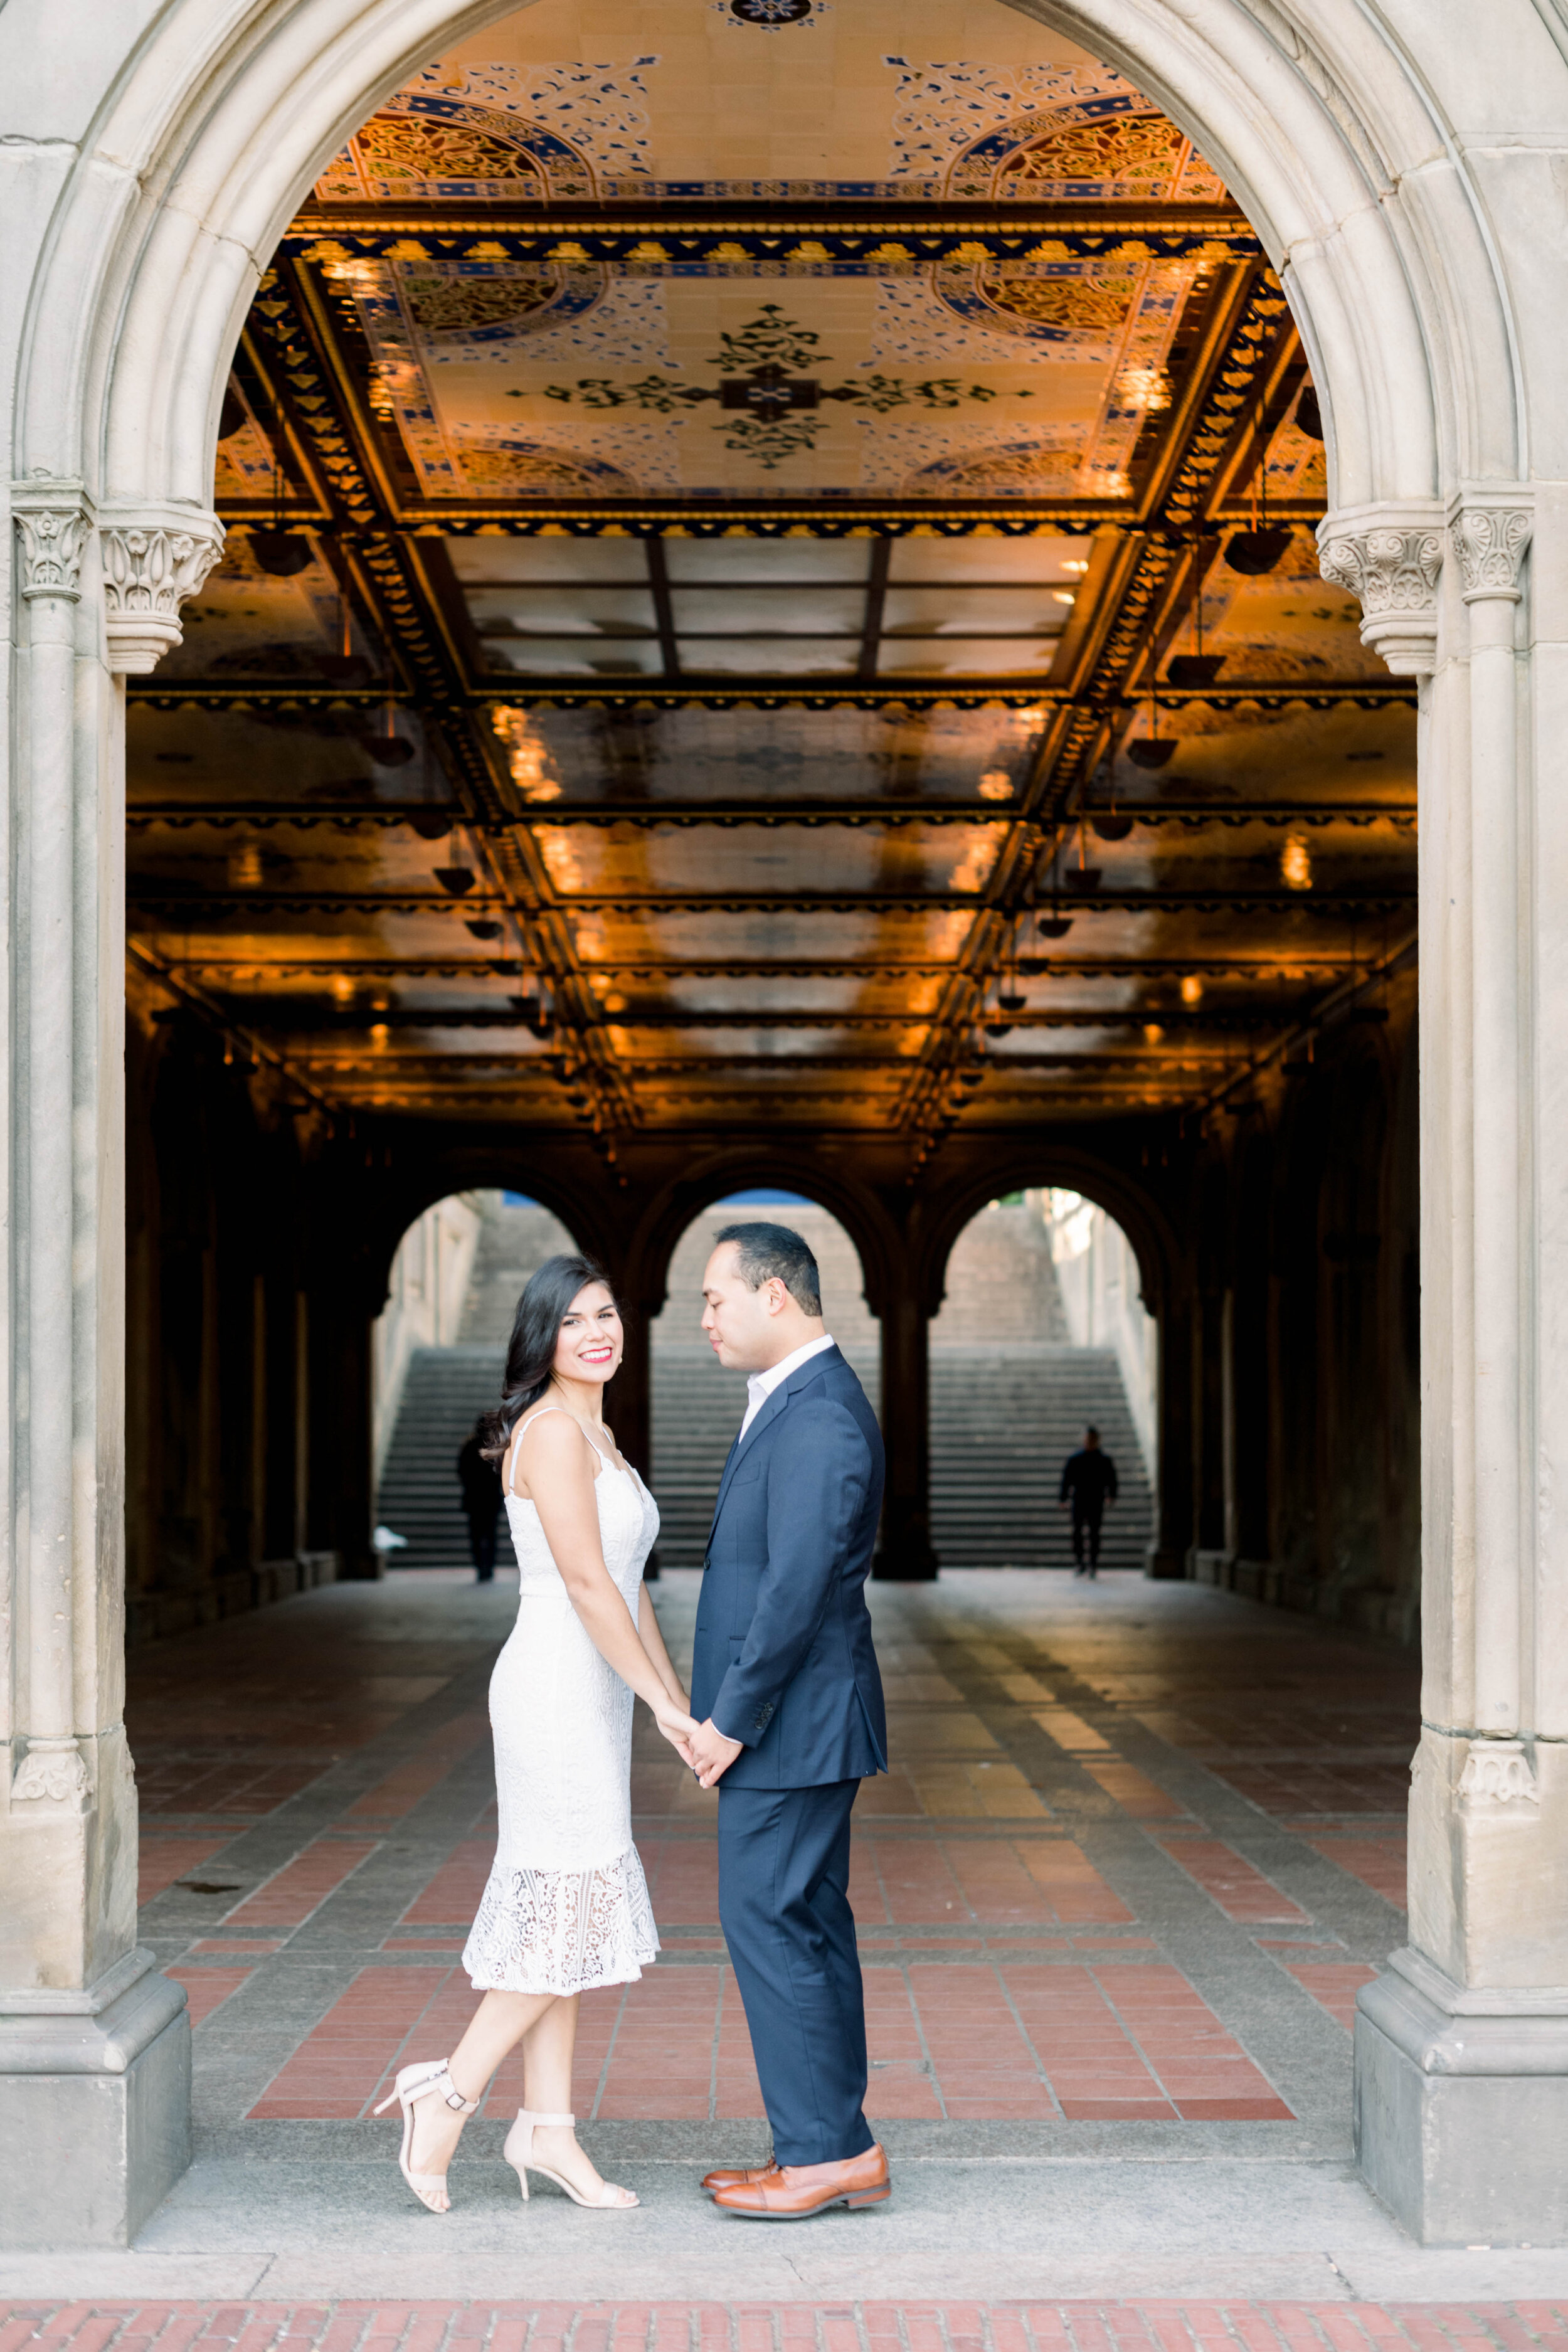 New York city+engagement+Bethesda Fountain+bethesda terrace+Manhattan+wedding+nyc+Central Park+lace dress+white bouquet+photo